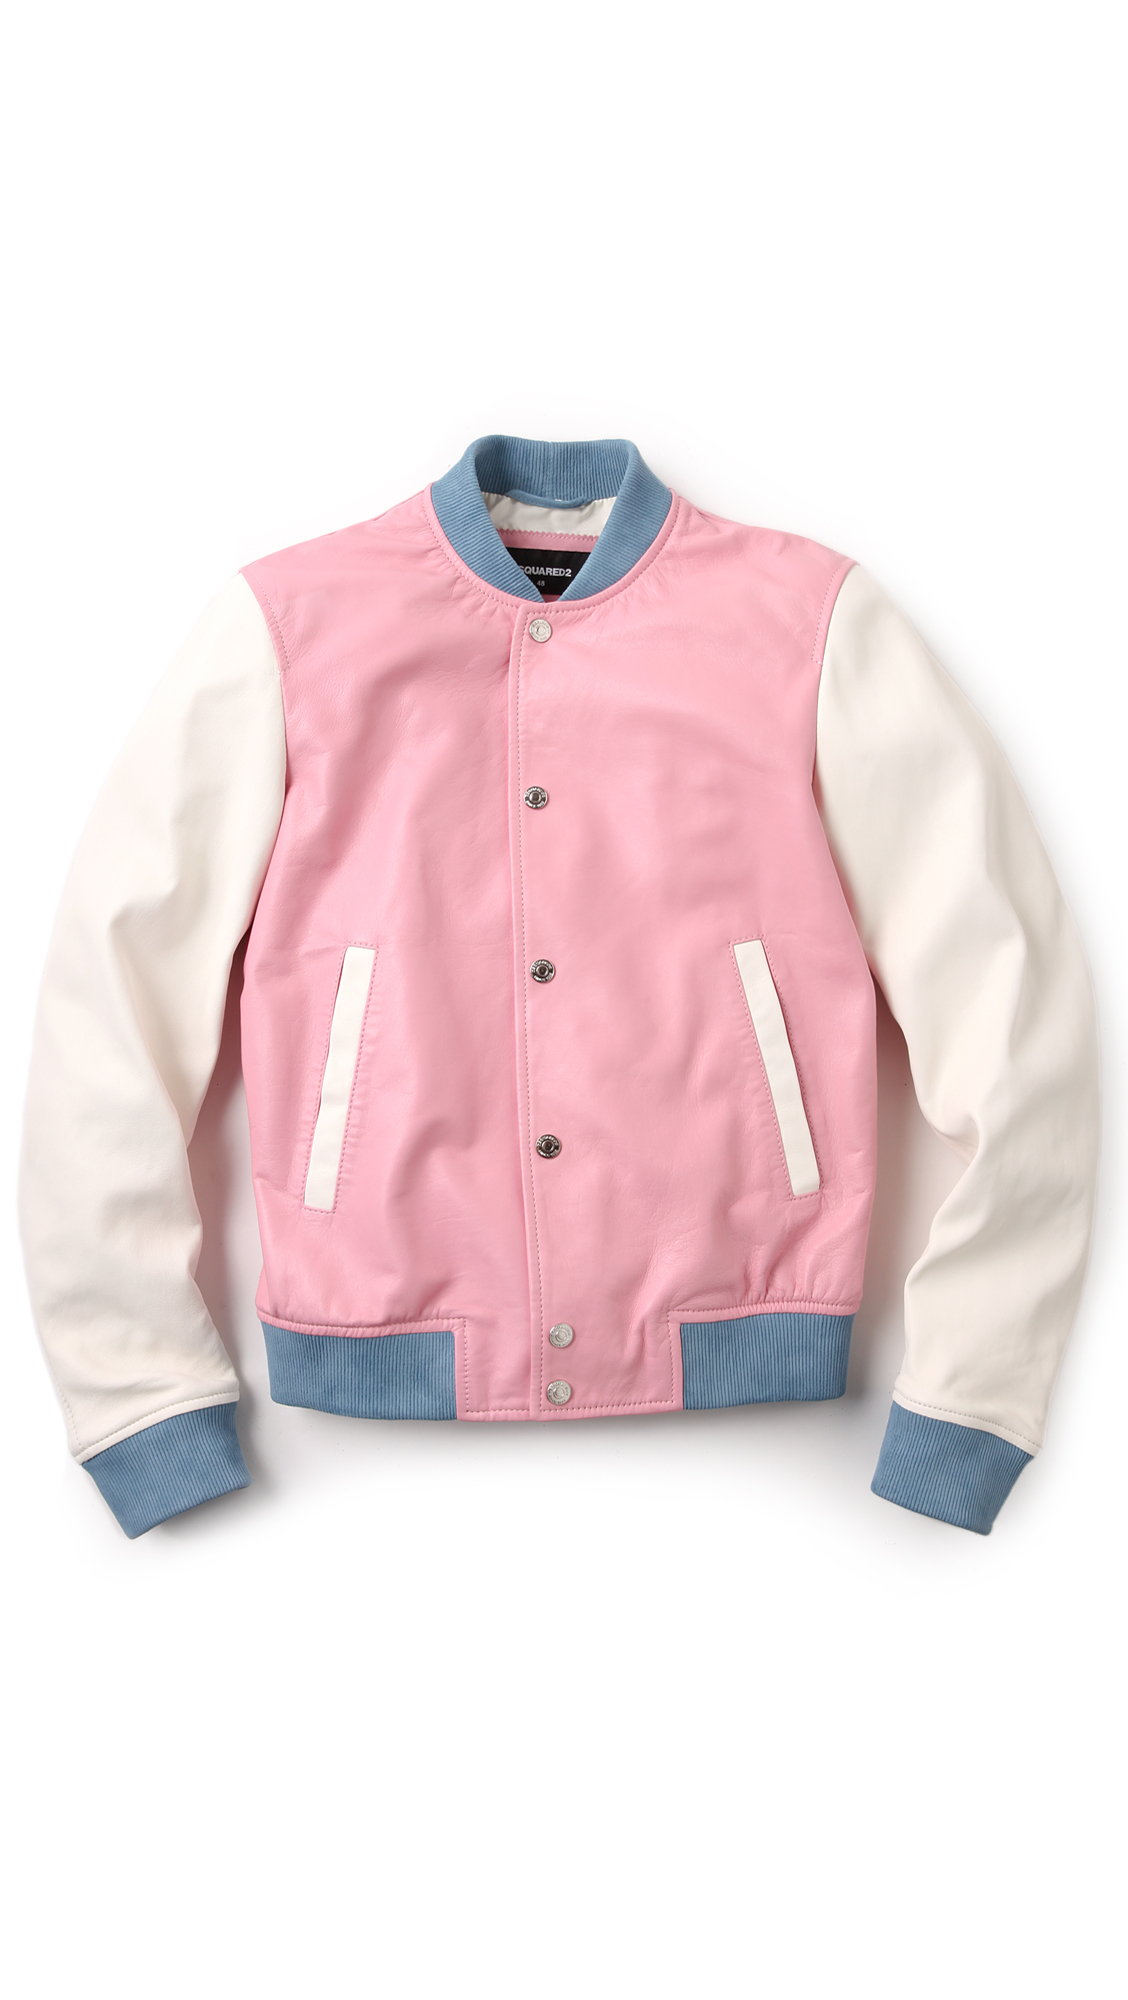 Dsquared 178 Pastel Leather Bomber In Pink For Men Lyst